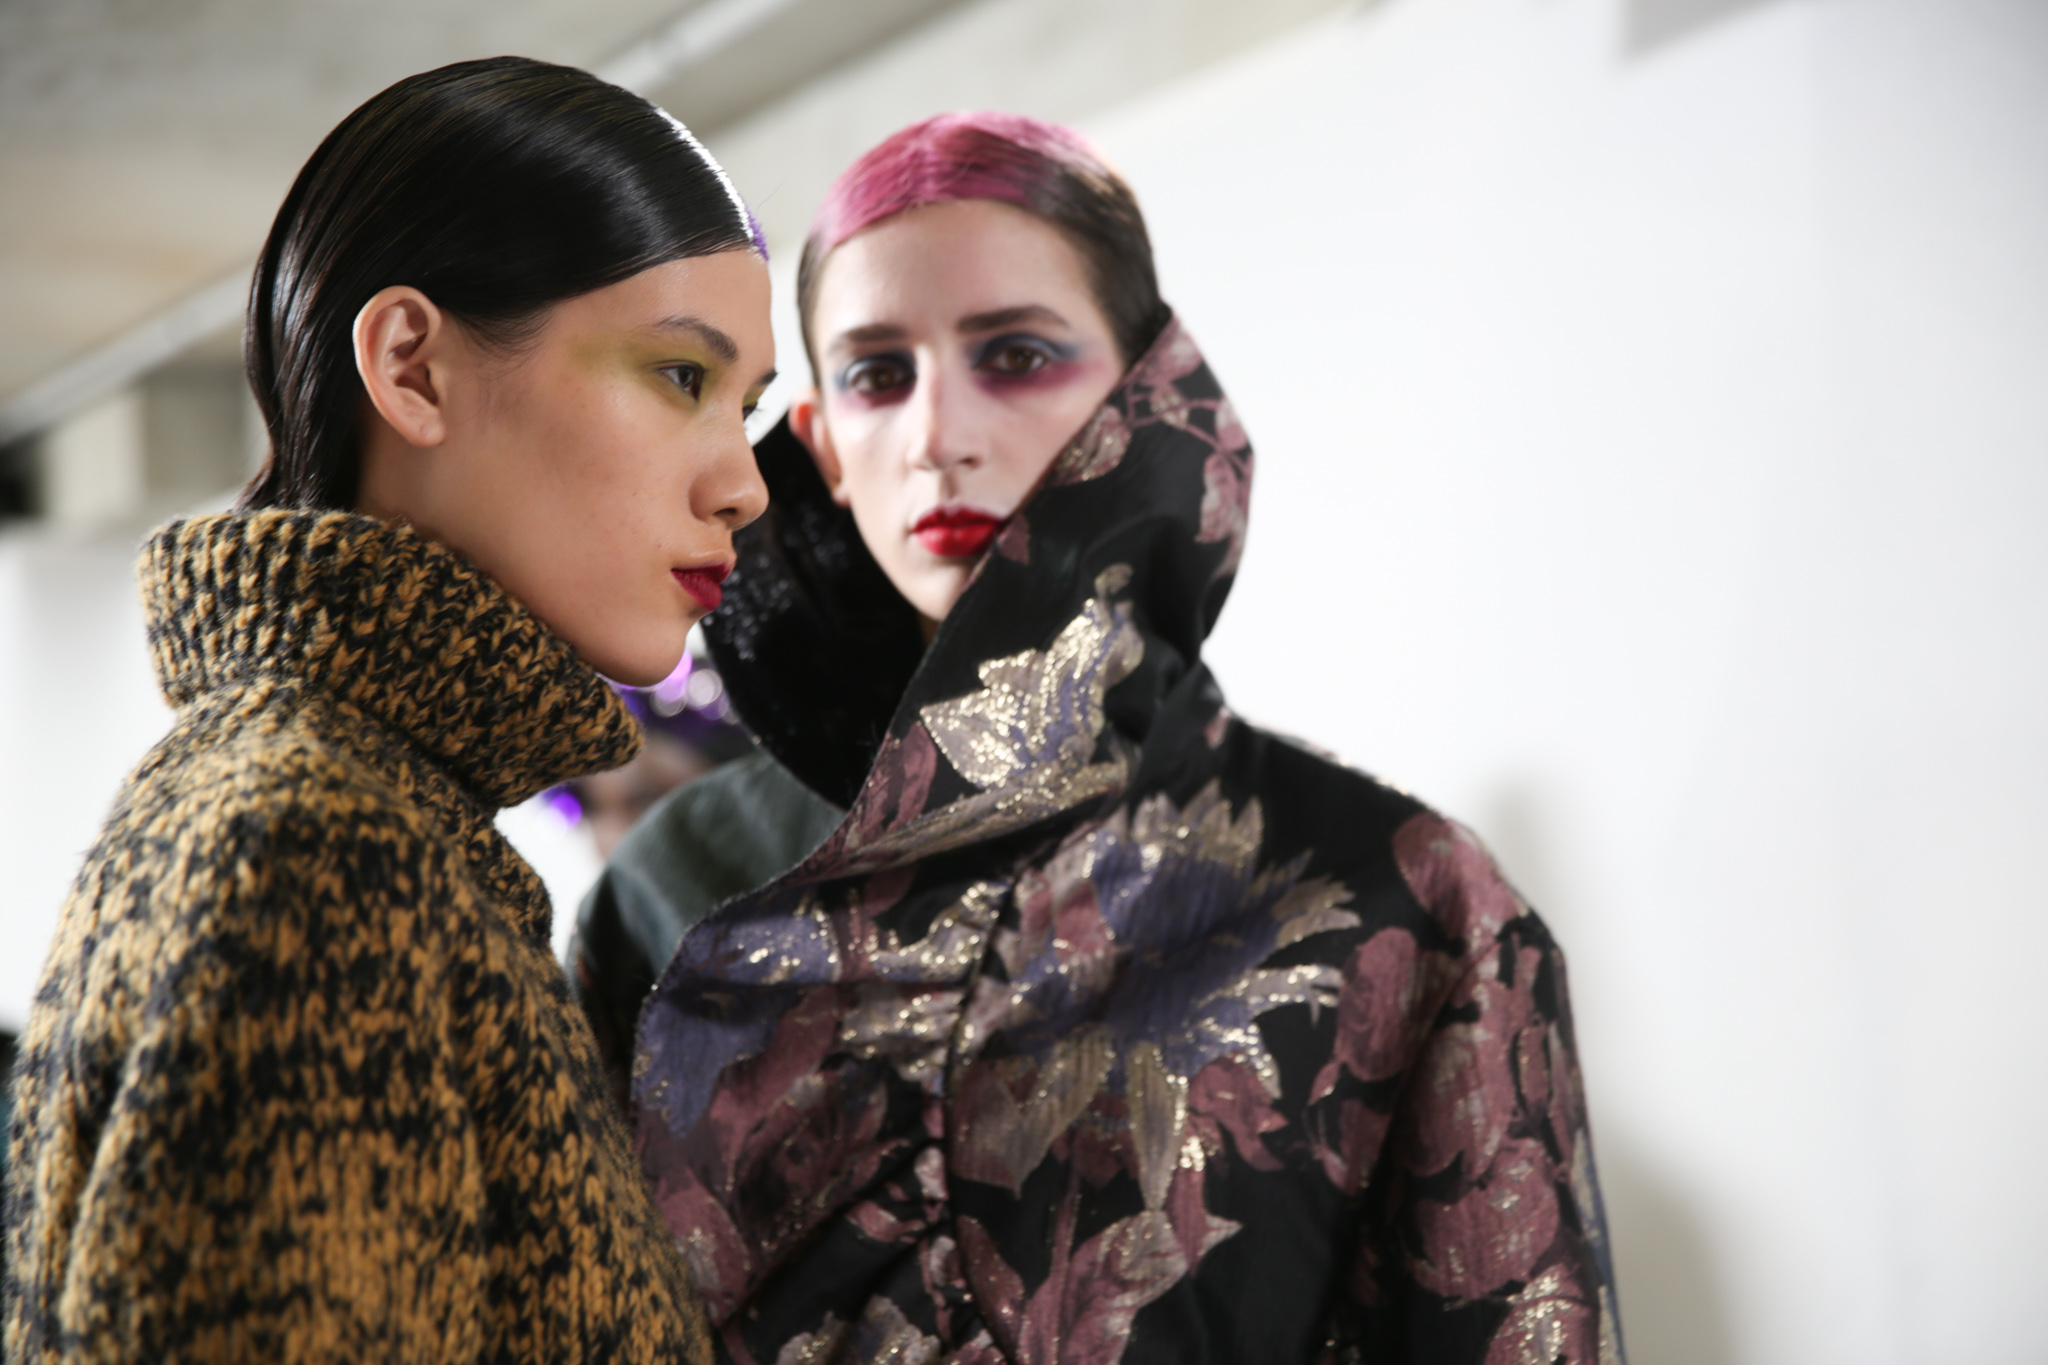 Backstage at Dries Van Noten RTW Fall 2020